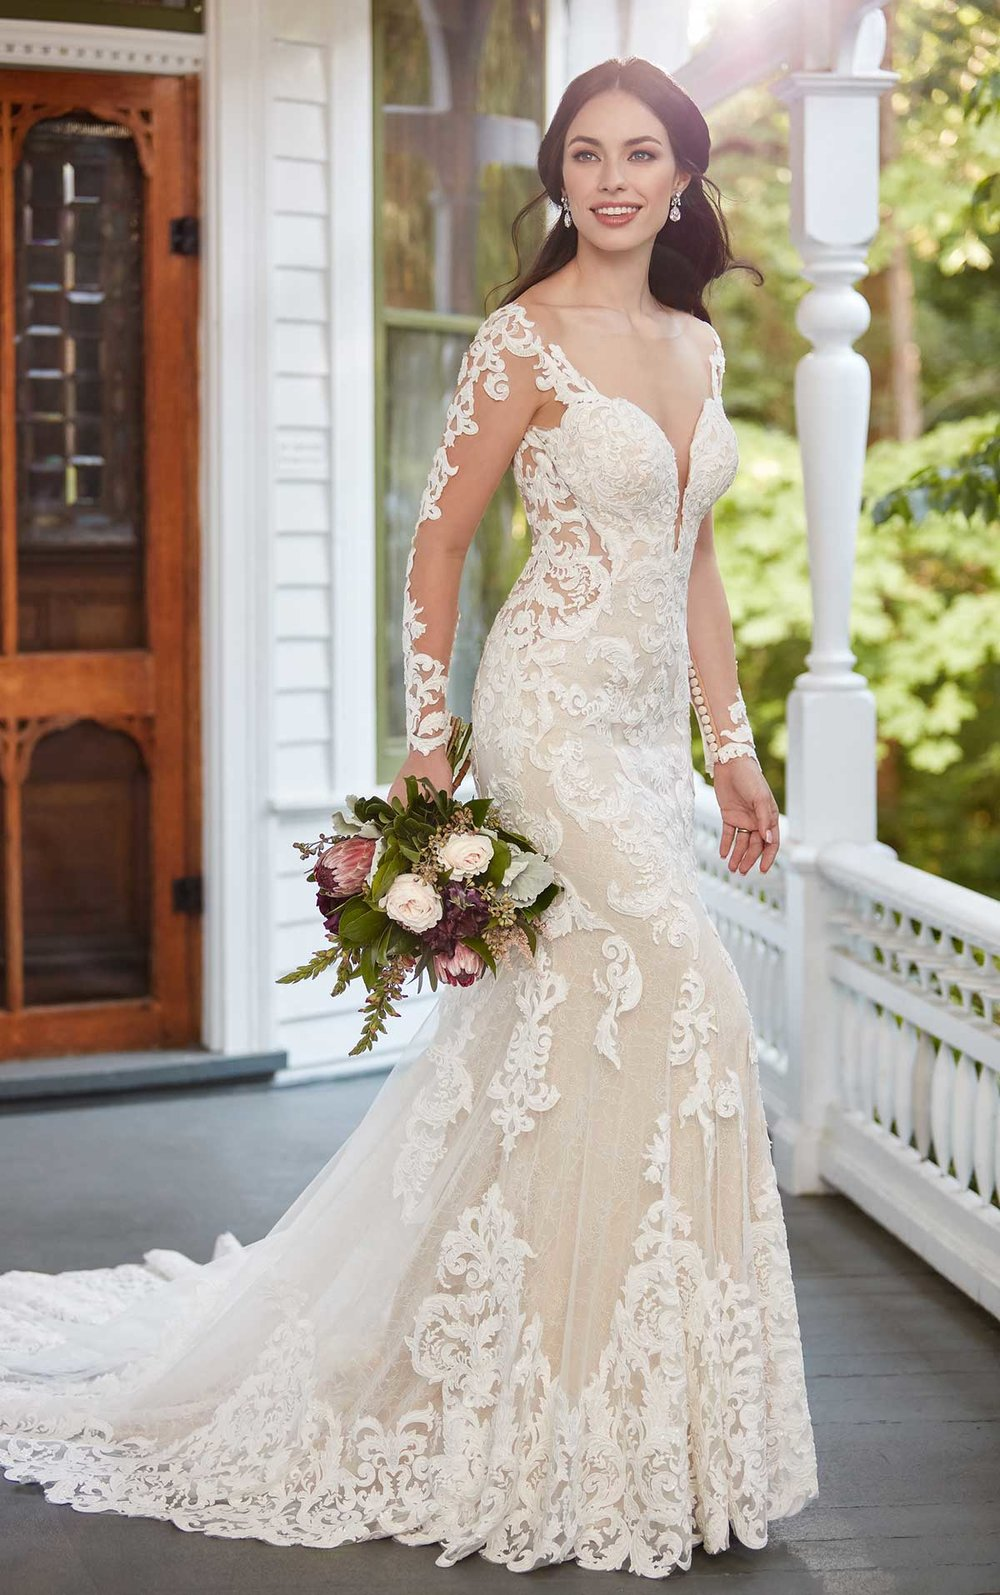 Wedding Dresses with Sleeves | Inventory # 01154 | available at Bride To Be Couture | 6040 Fair Oaks Blvd. Carmichael, CA 95608 | 916.972.8223 | @bridetobecouture